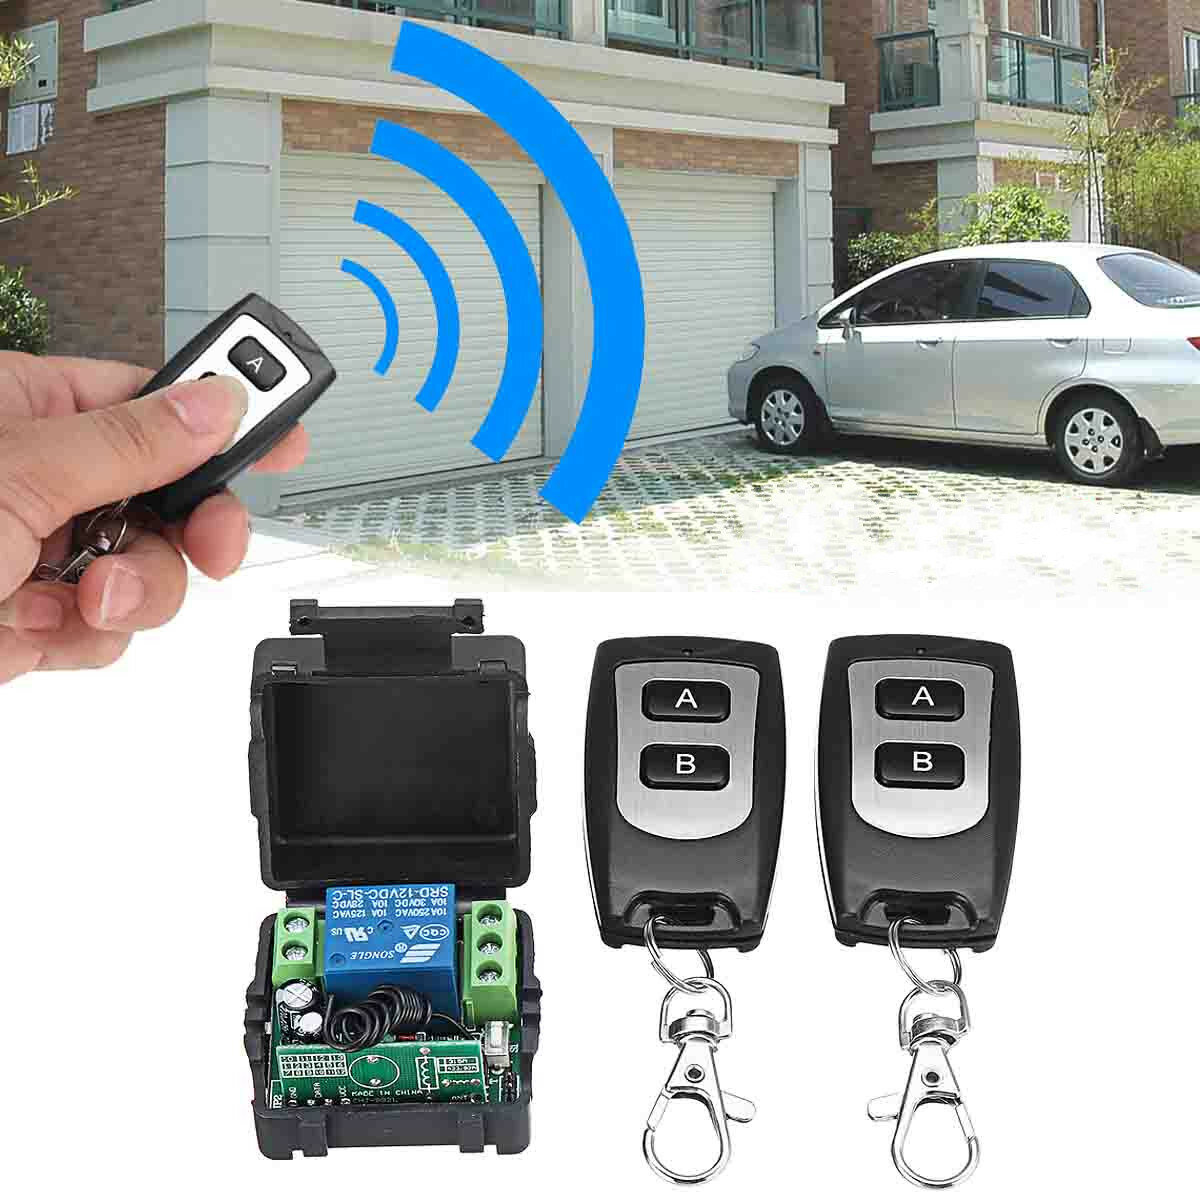 DC12V 433MHz Relay 1CH Wireless RF Remote Control Switch Transmitter for Light